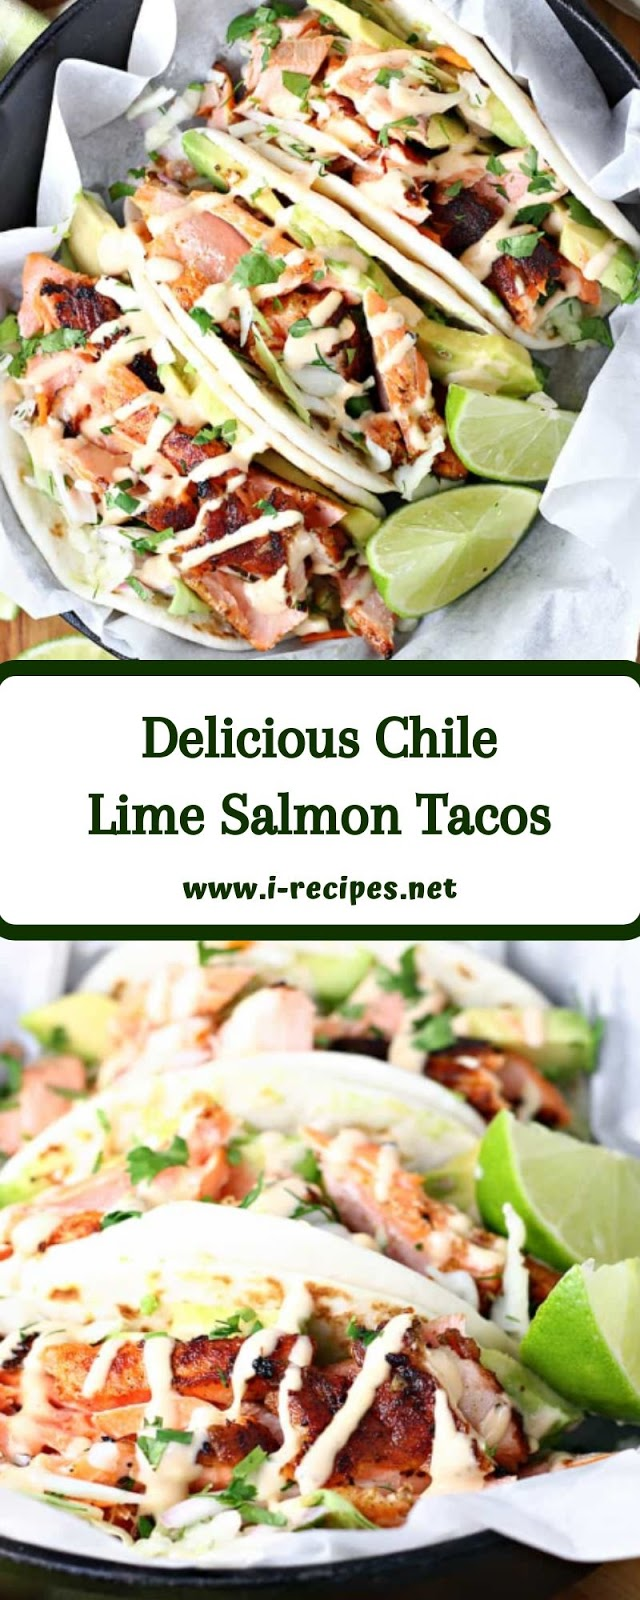 Delicious Chile Lime Salmon Tacos